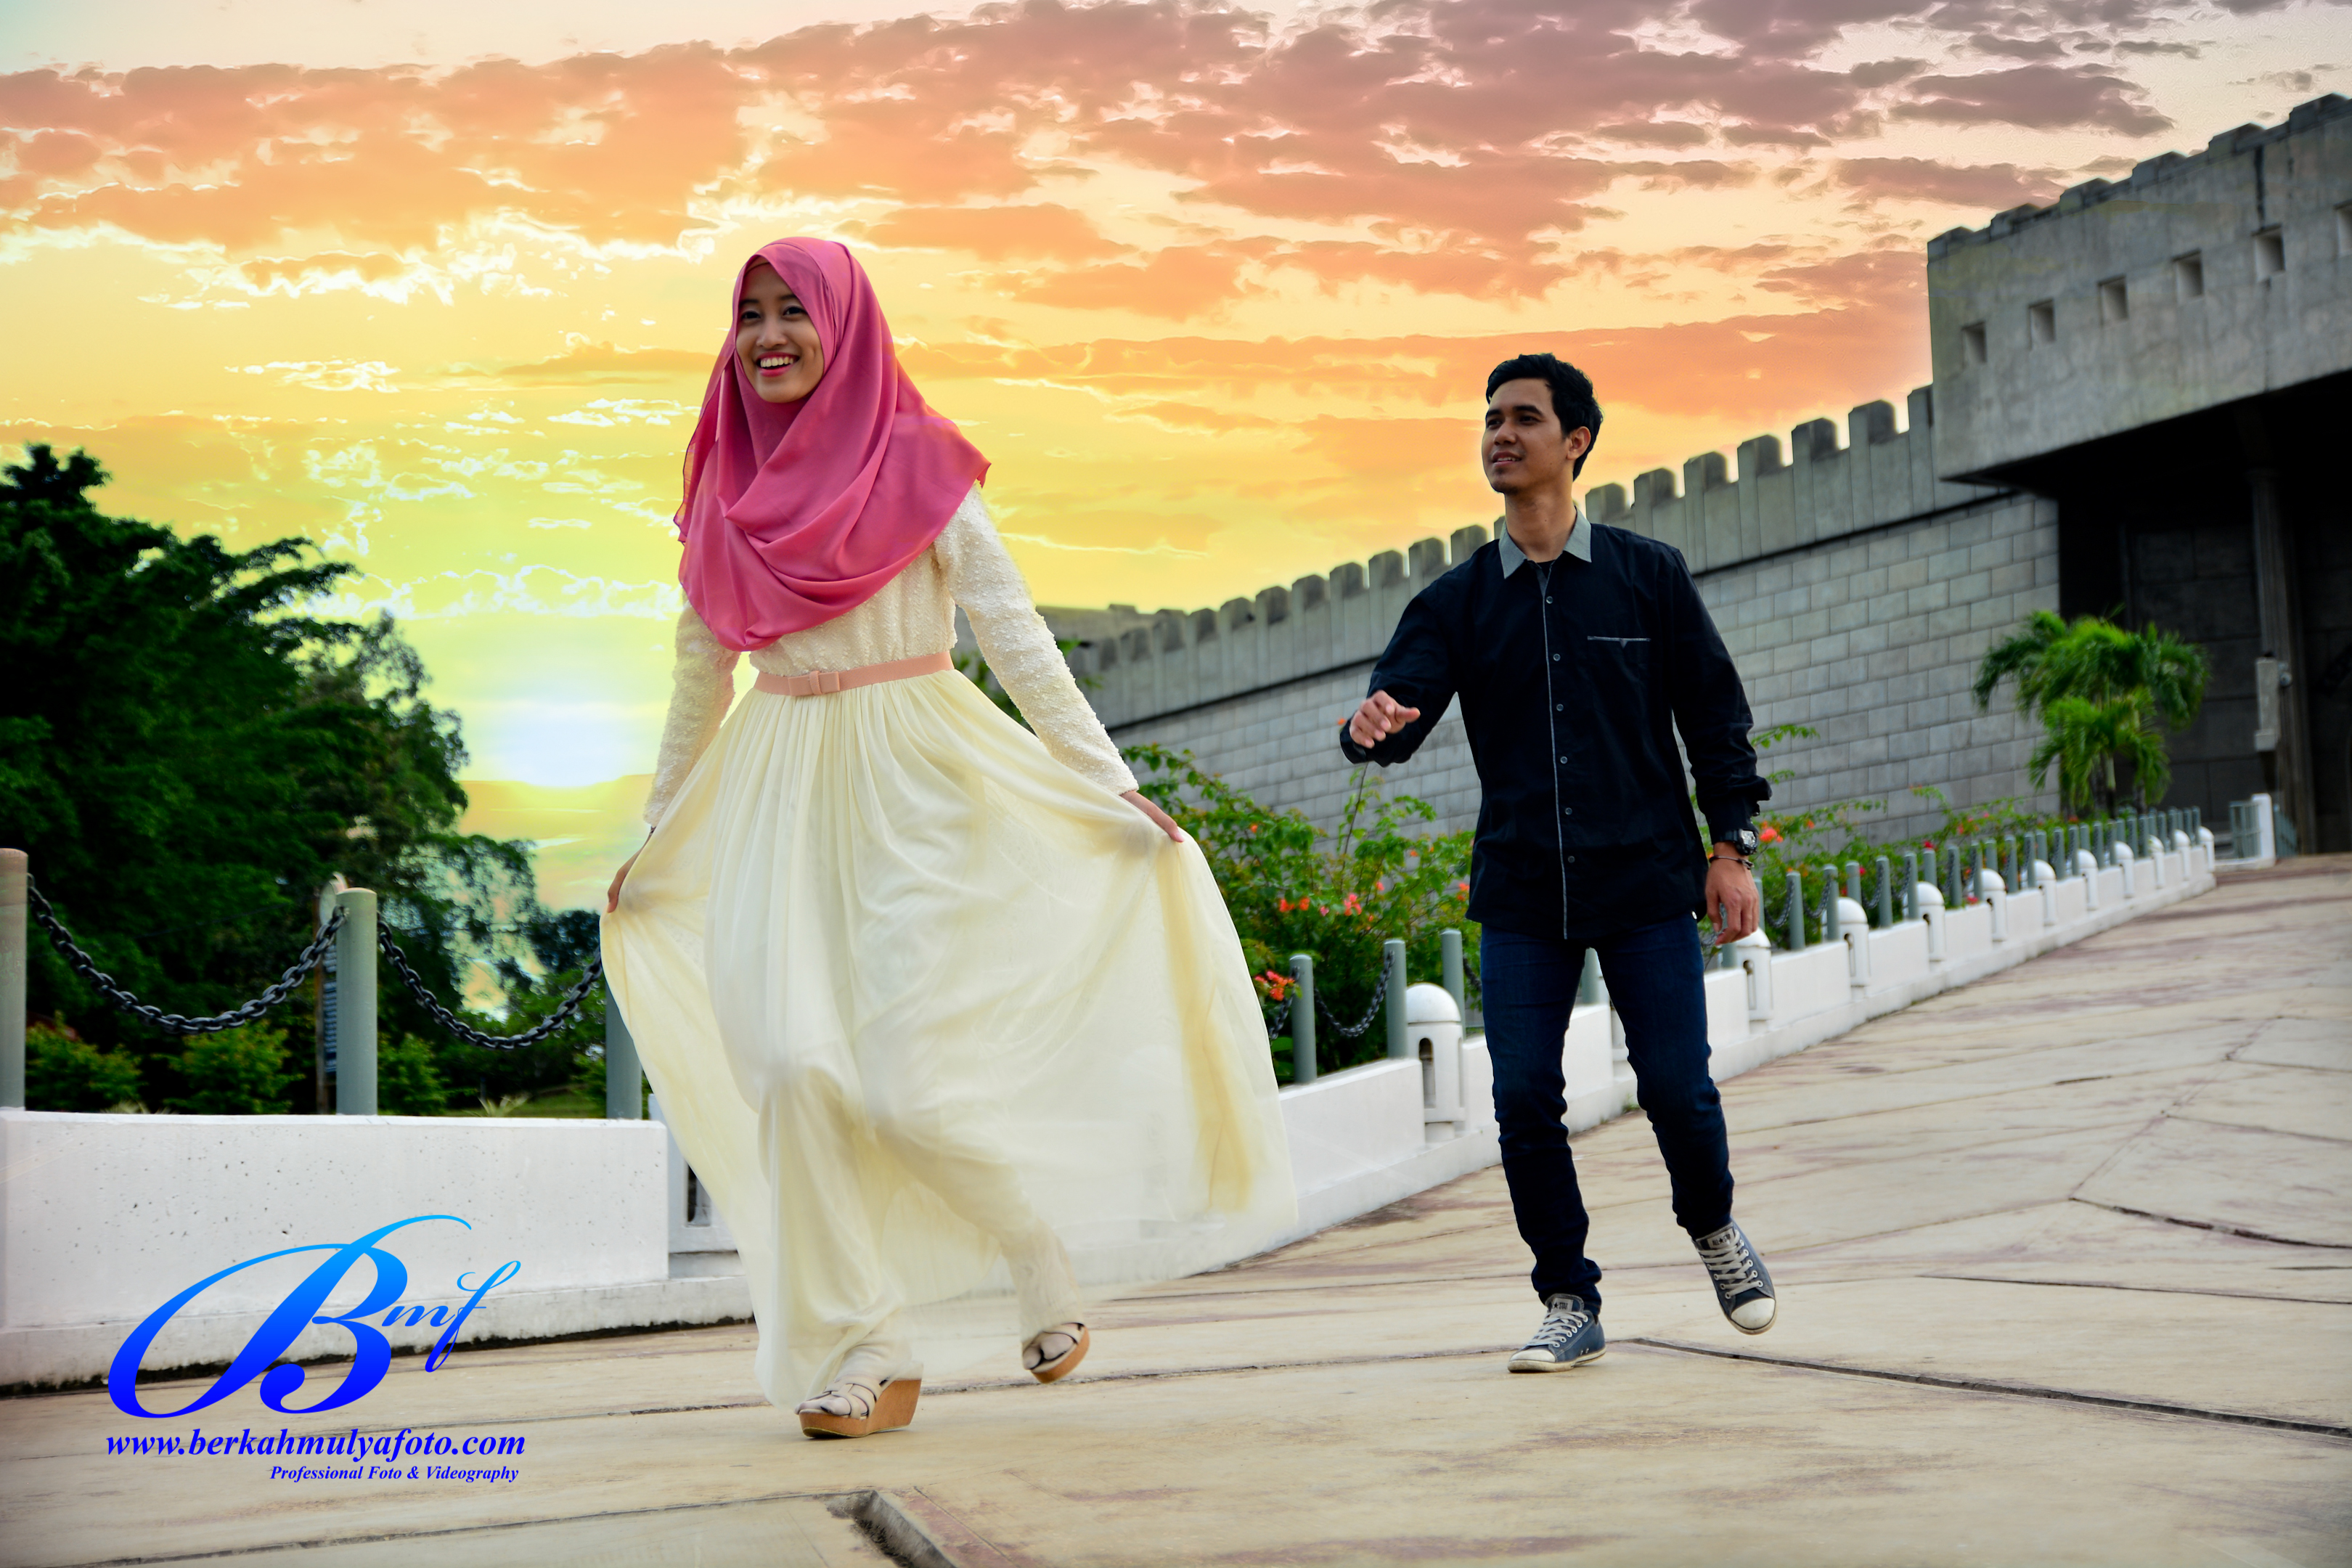 Jasa Foto Prewedding Di Taman Mini Indonesia Indah Pebby Silvi